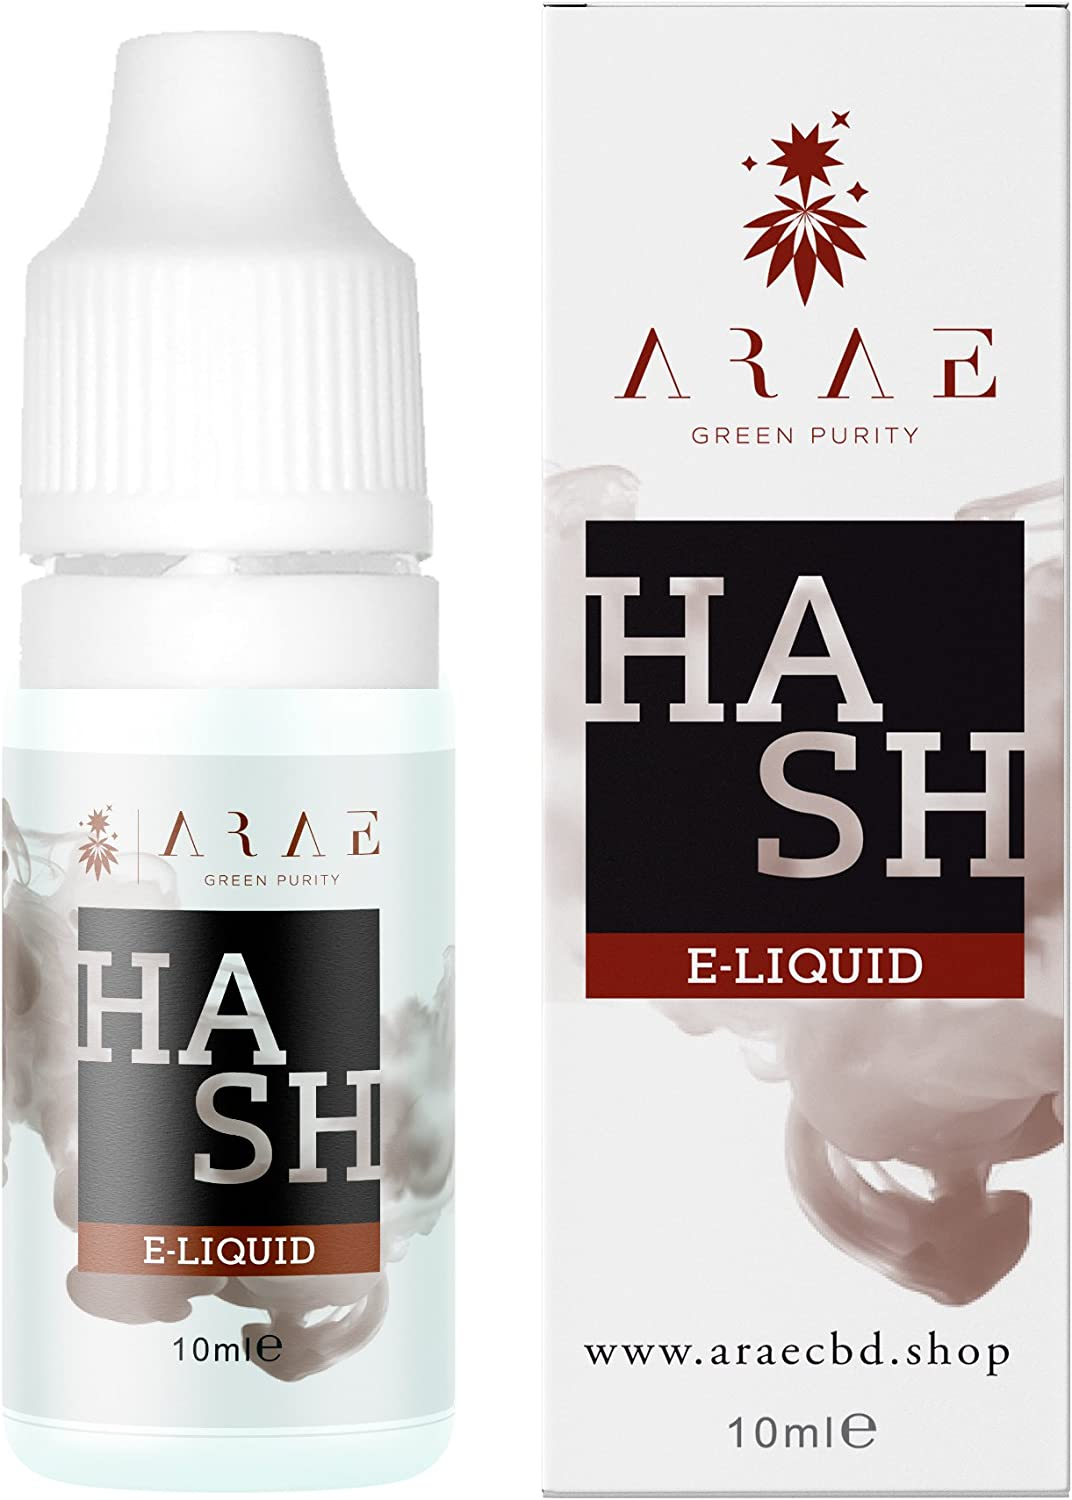 LIQUIDO CBD ORIGINALS ARAE 10ml -100MG SIN NICOTINA (Hash)